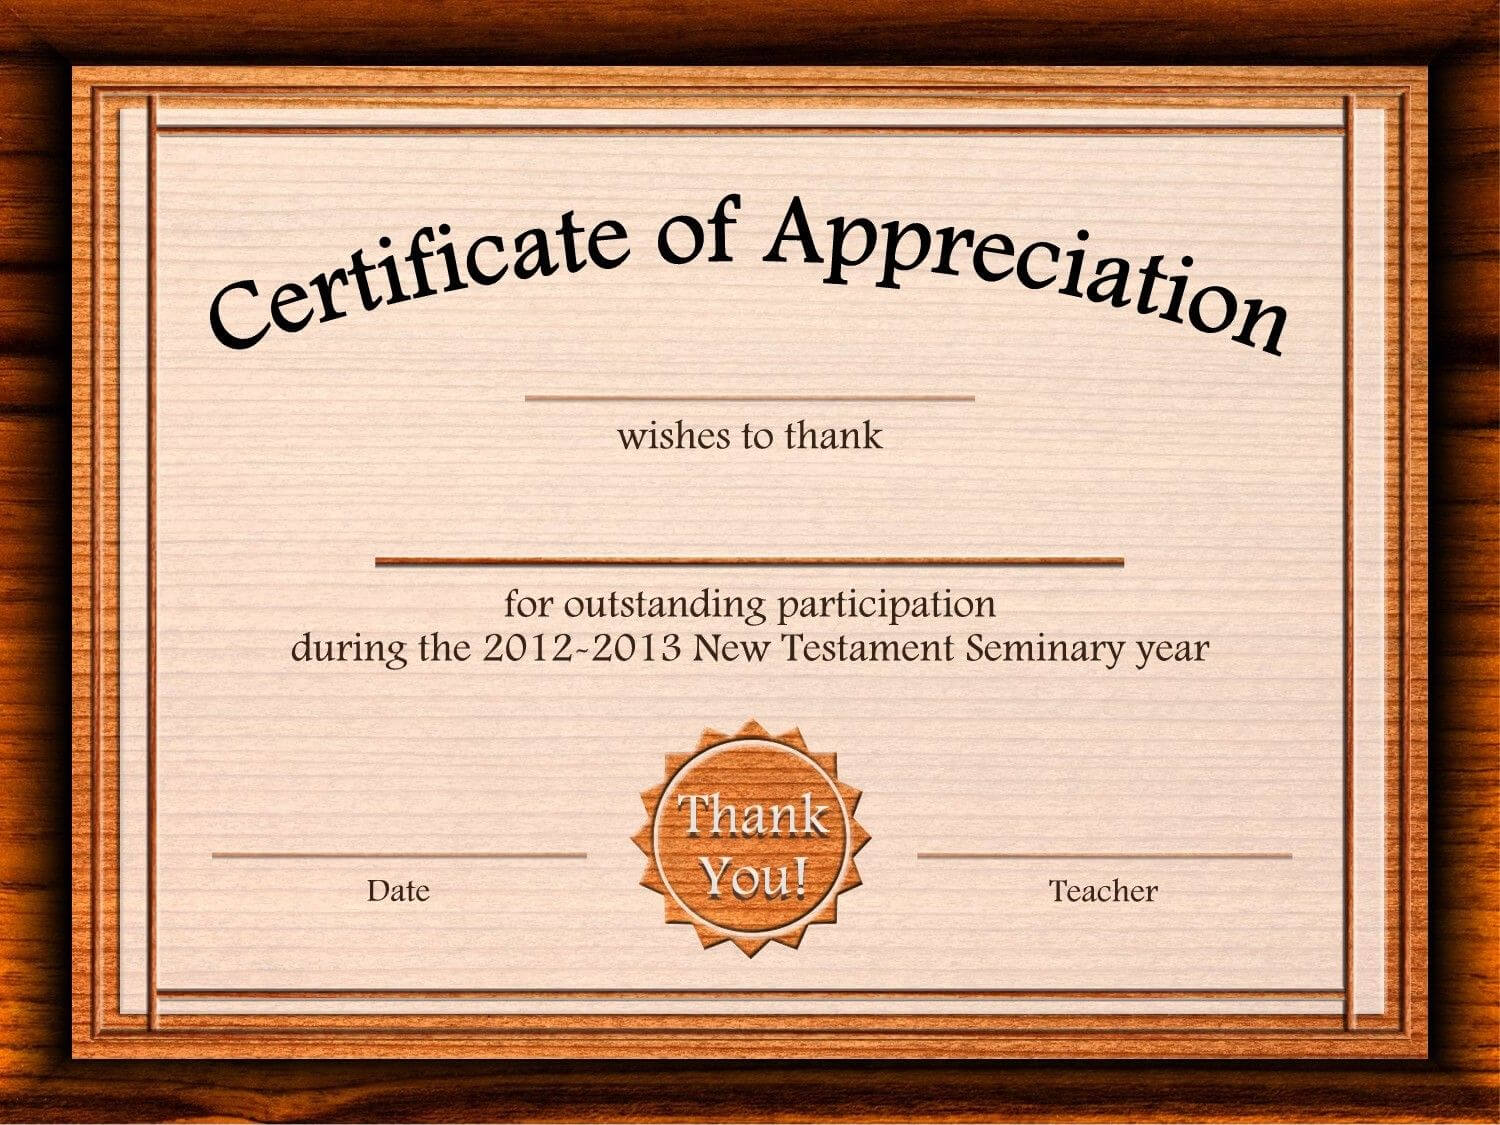 Free Certificate Of Appreciation Templates For Word Throughout Professional Certificate Templates For Word